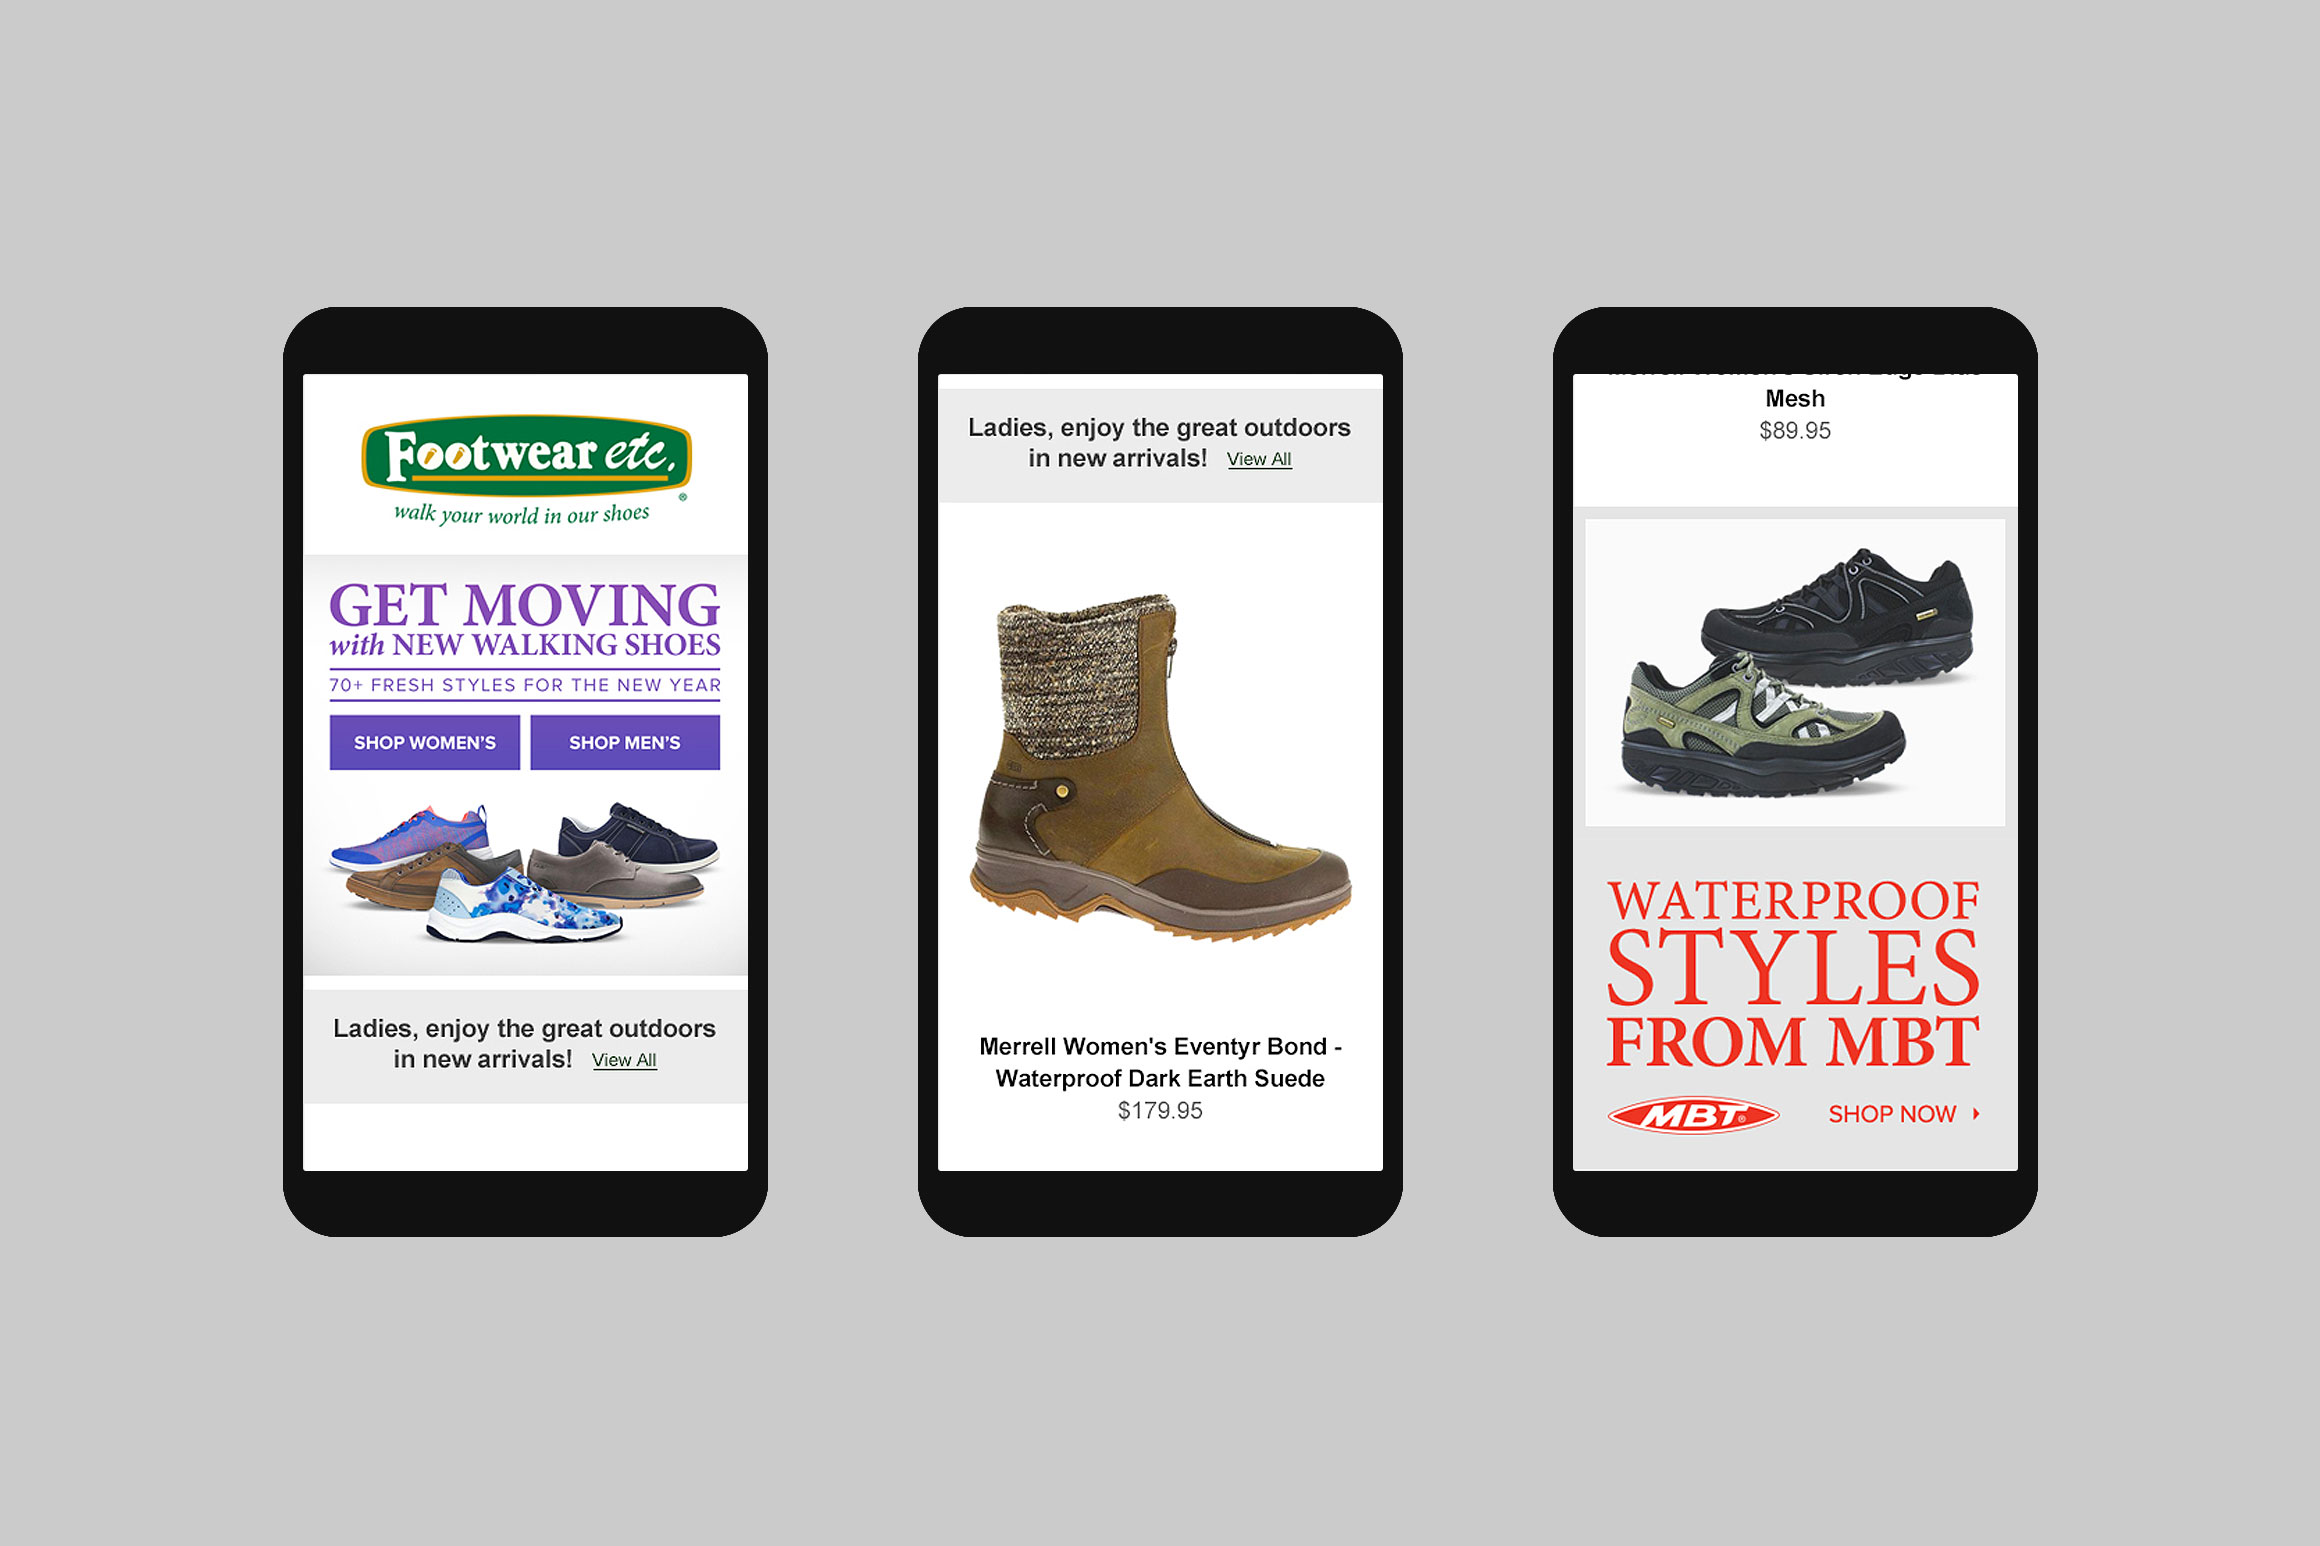 Footwear etc. Mobile Email Template #1